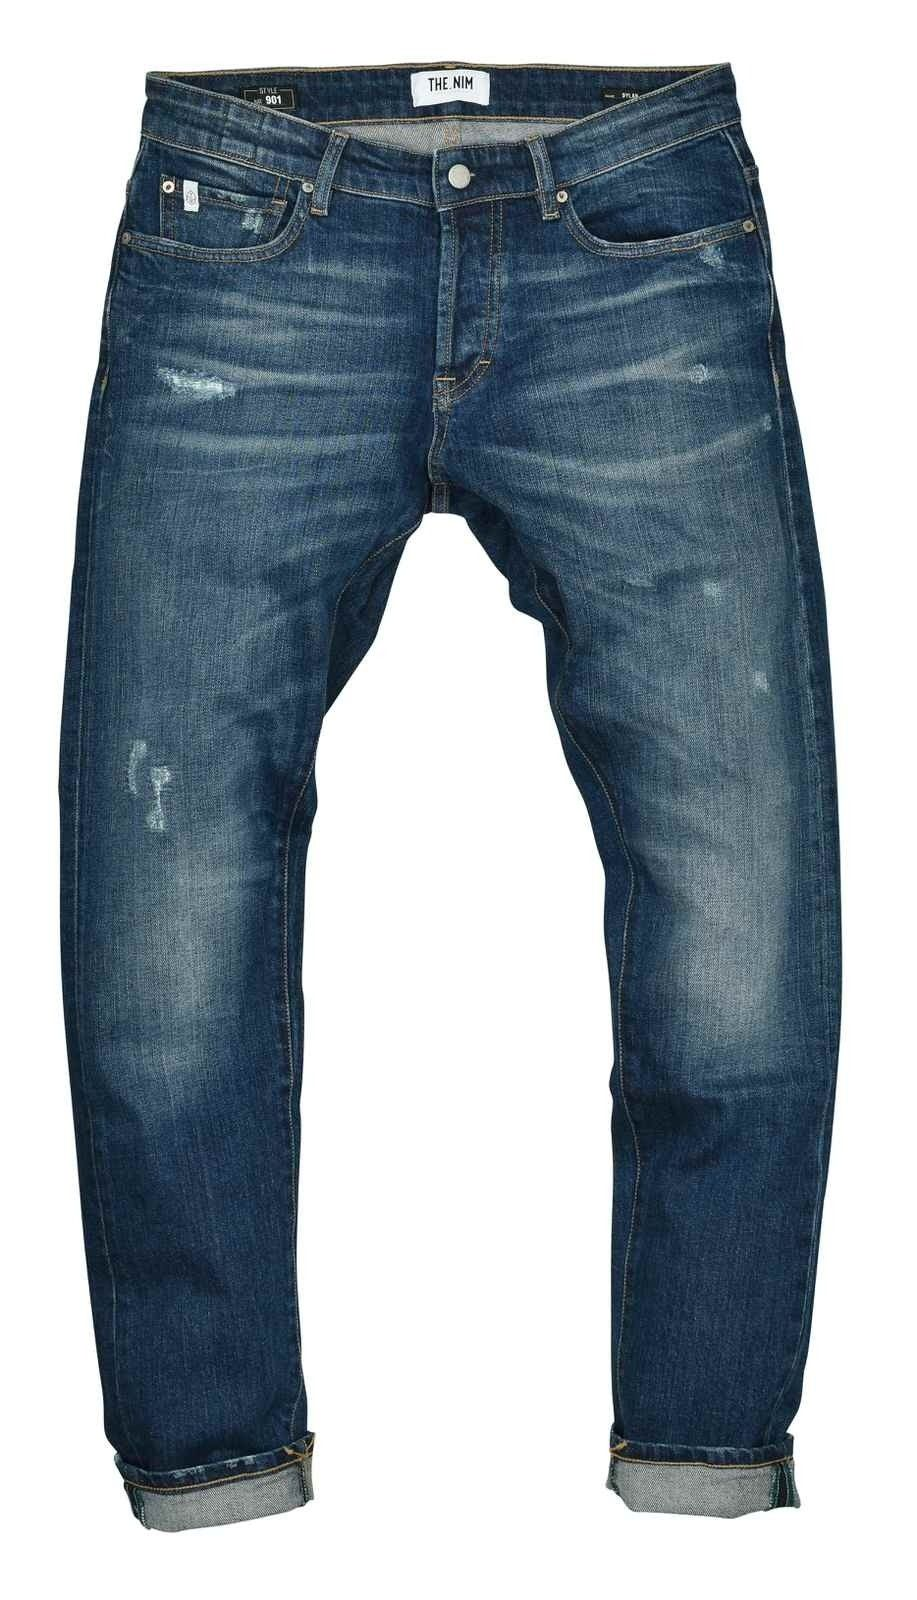 THE.NIM - Herren Jeans - Dylan Slim Fit Jeans - Destroyed Repaired